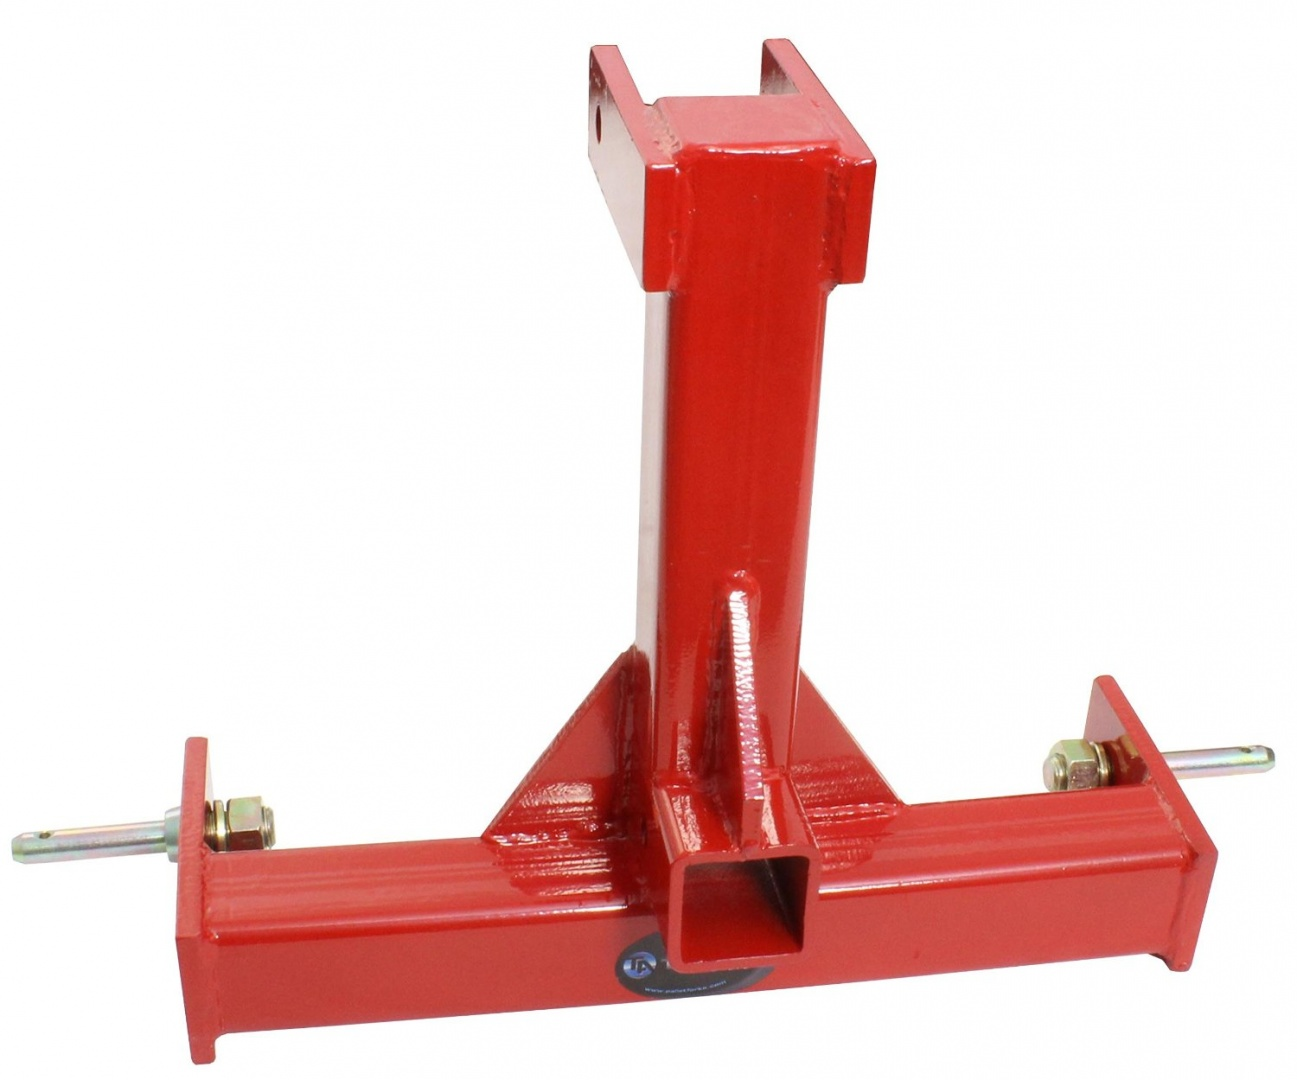 Cat 0 3 Point Hitch Dimensions : Titan category point tractor receiver larwn drawbar